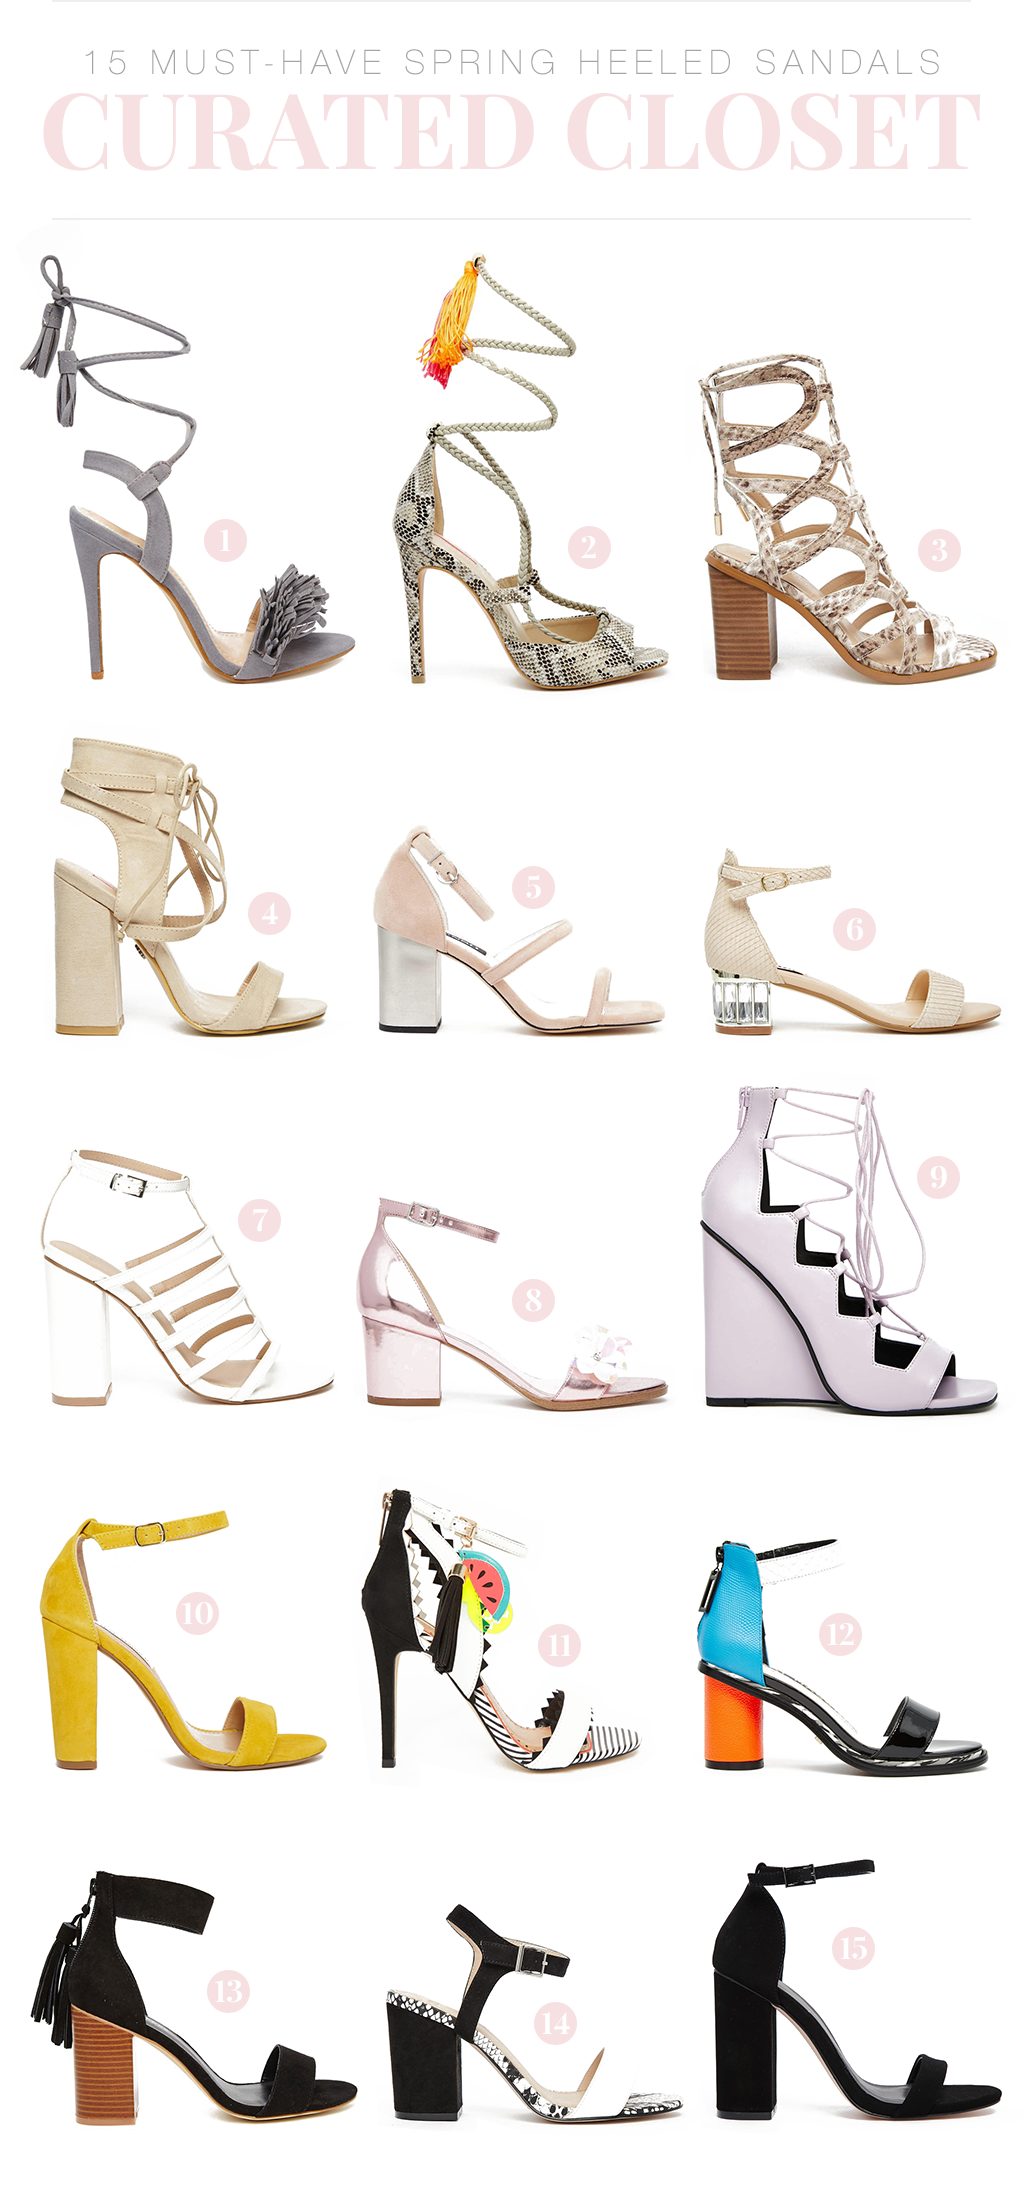 15 Must-Have Spring Heeled Sandals to add to your closet | www.wovenwithgold.com